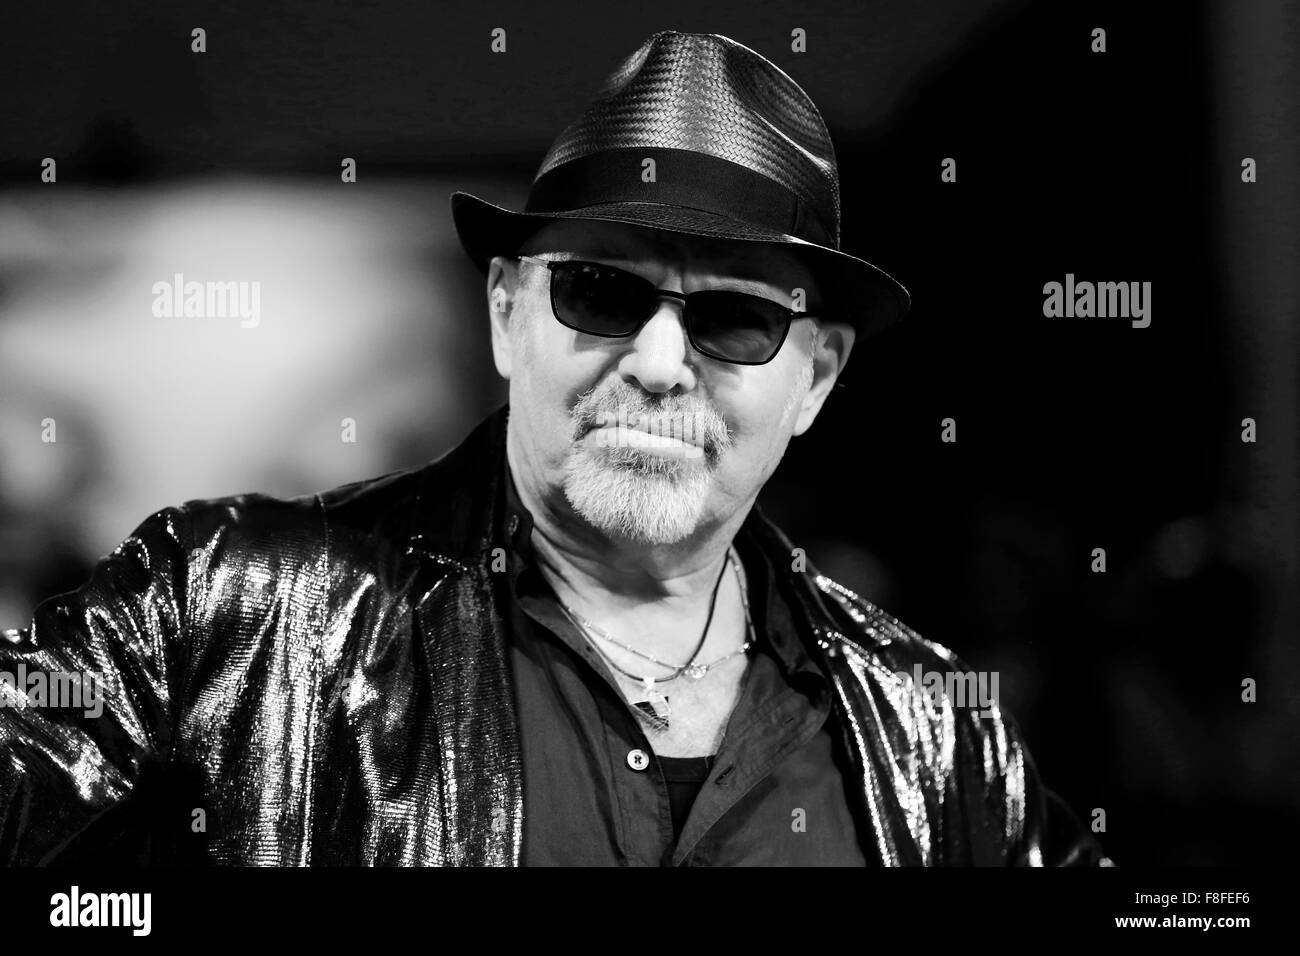 Album Di Vasco Rossi Vasco Rossi Stock Photos Vasco Rossi Stock Images Alamy